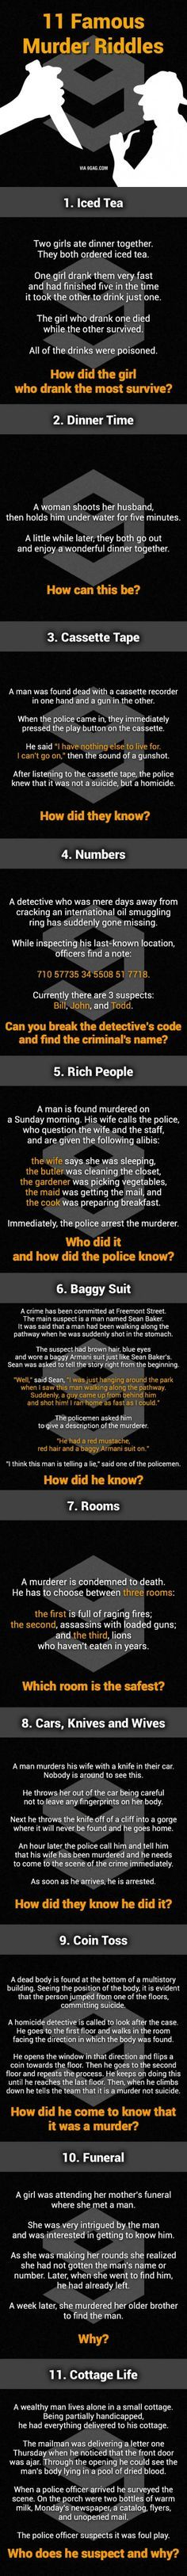 11 Murder Mystery Riddles. Can You Solve Them All?